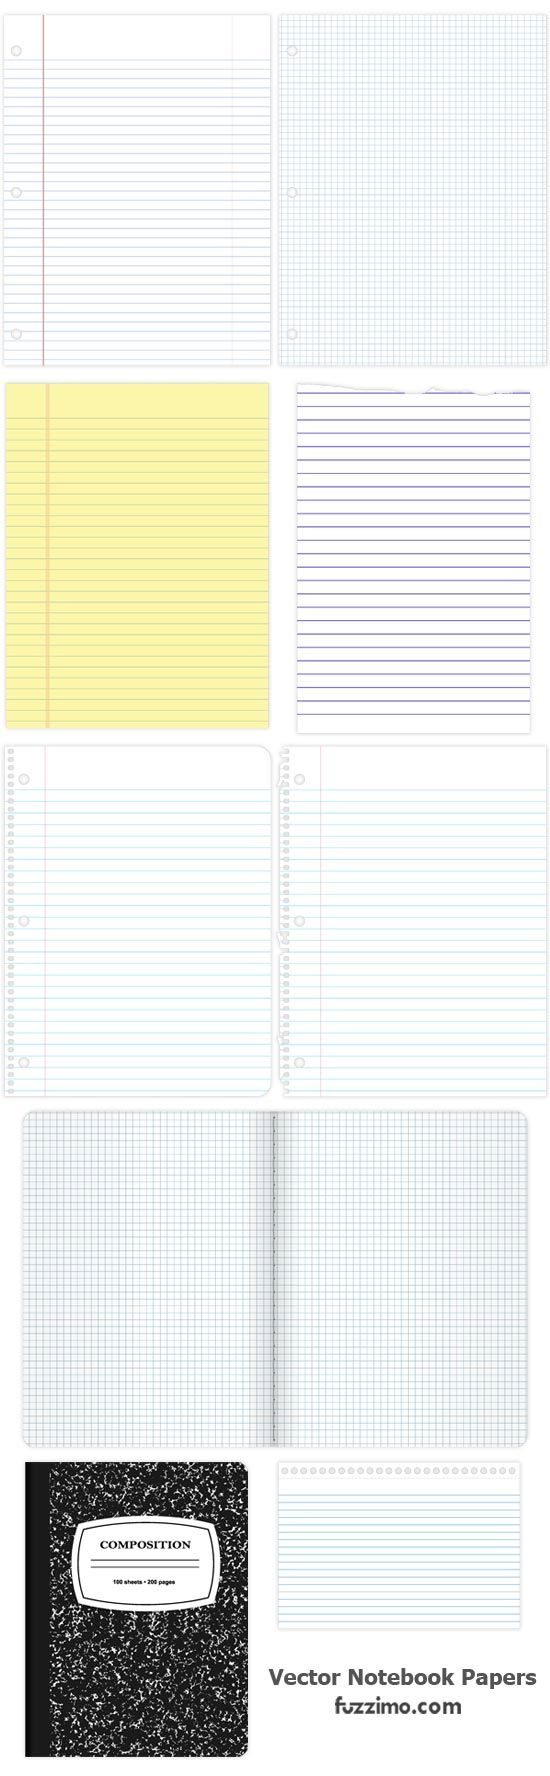 Notebook Paper Word Template 3358 Best Templates And Printables Imprimibles Y Patrones Images On .